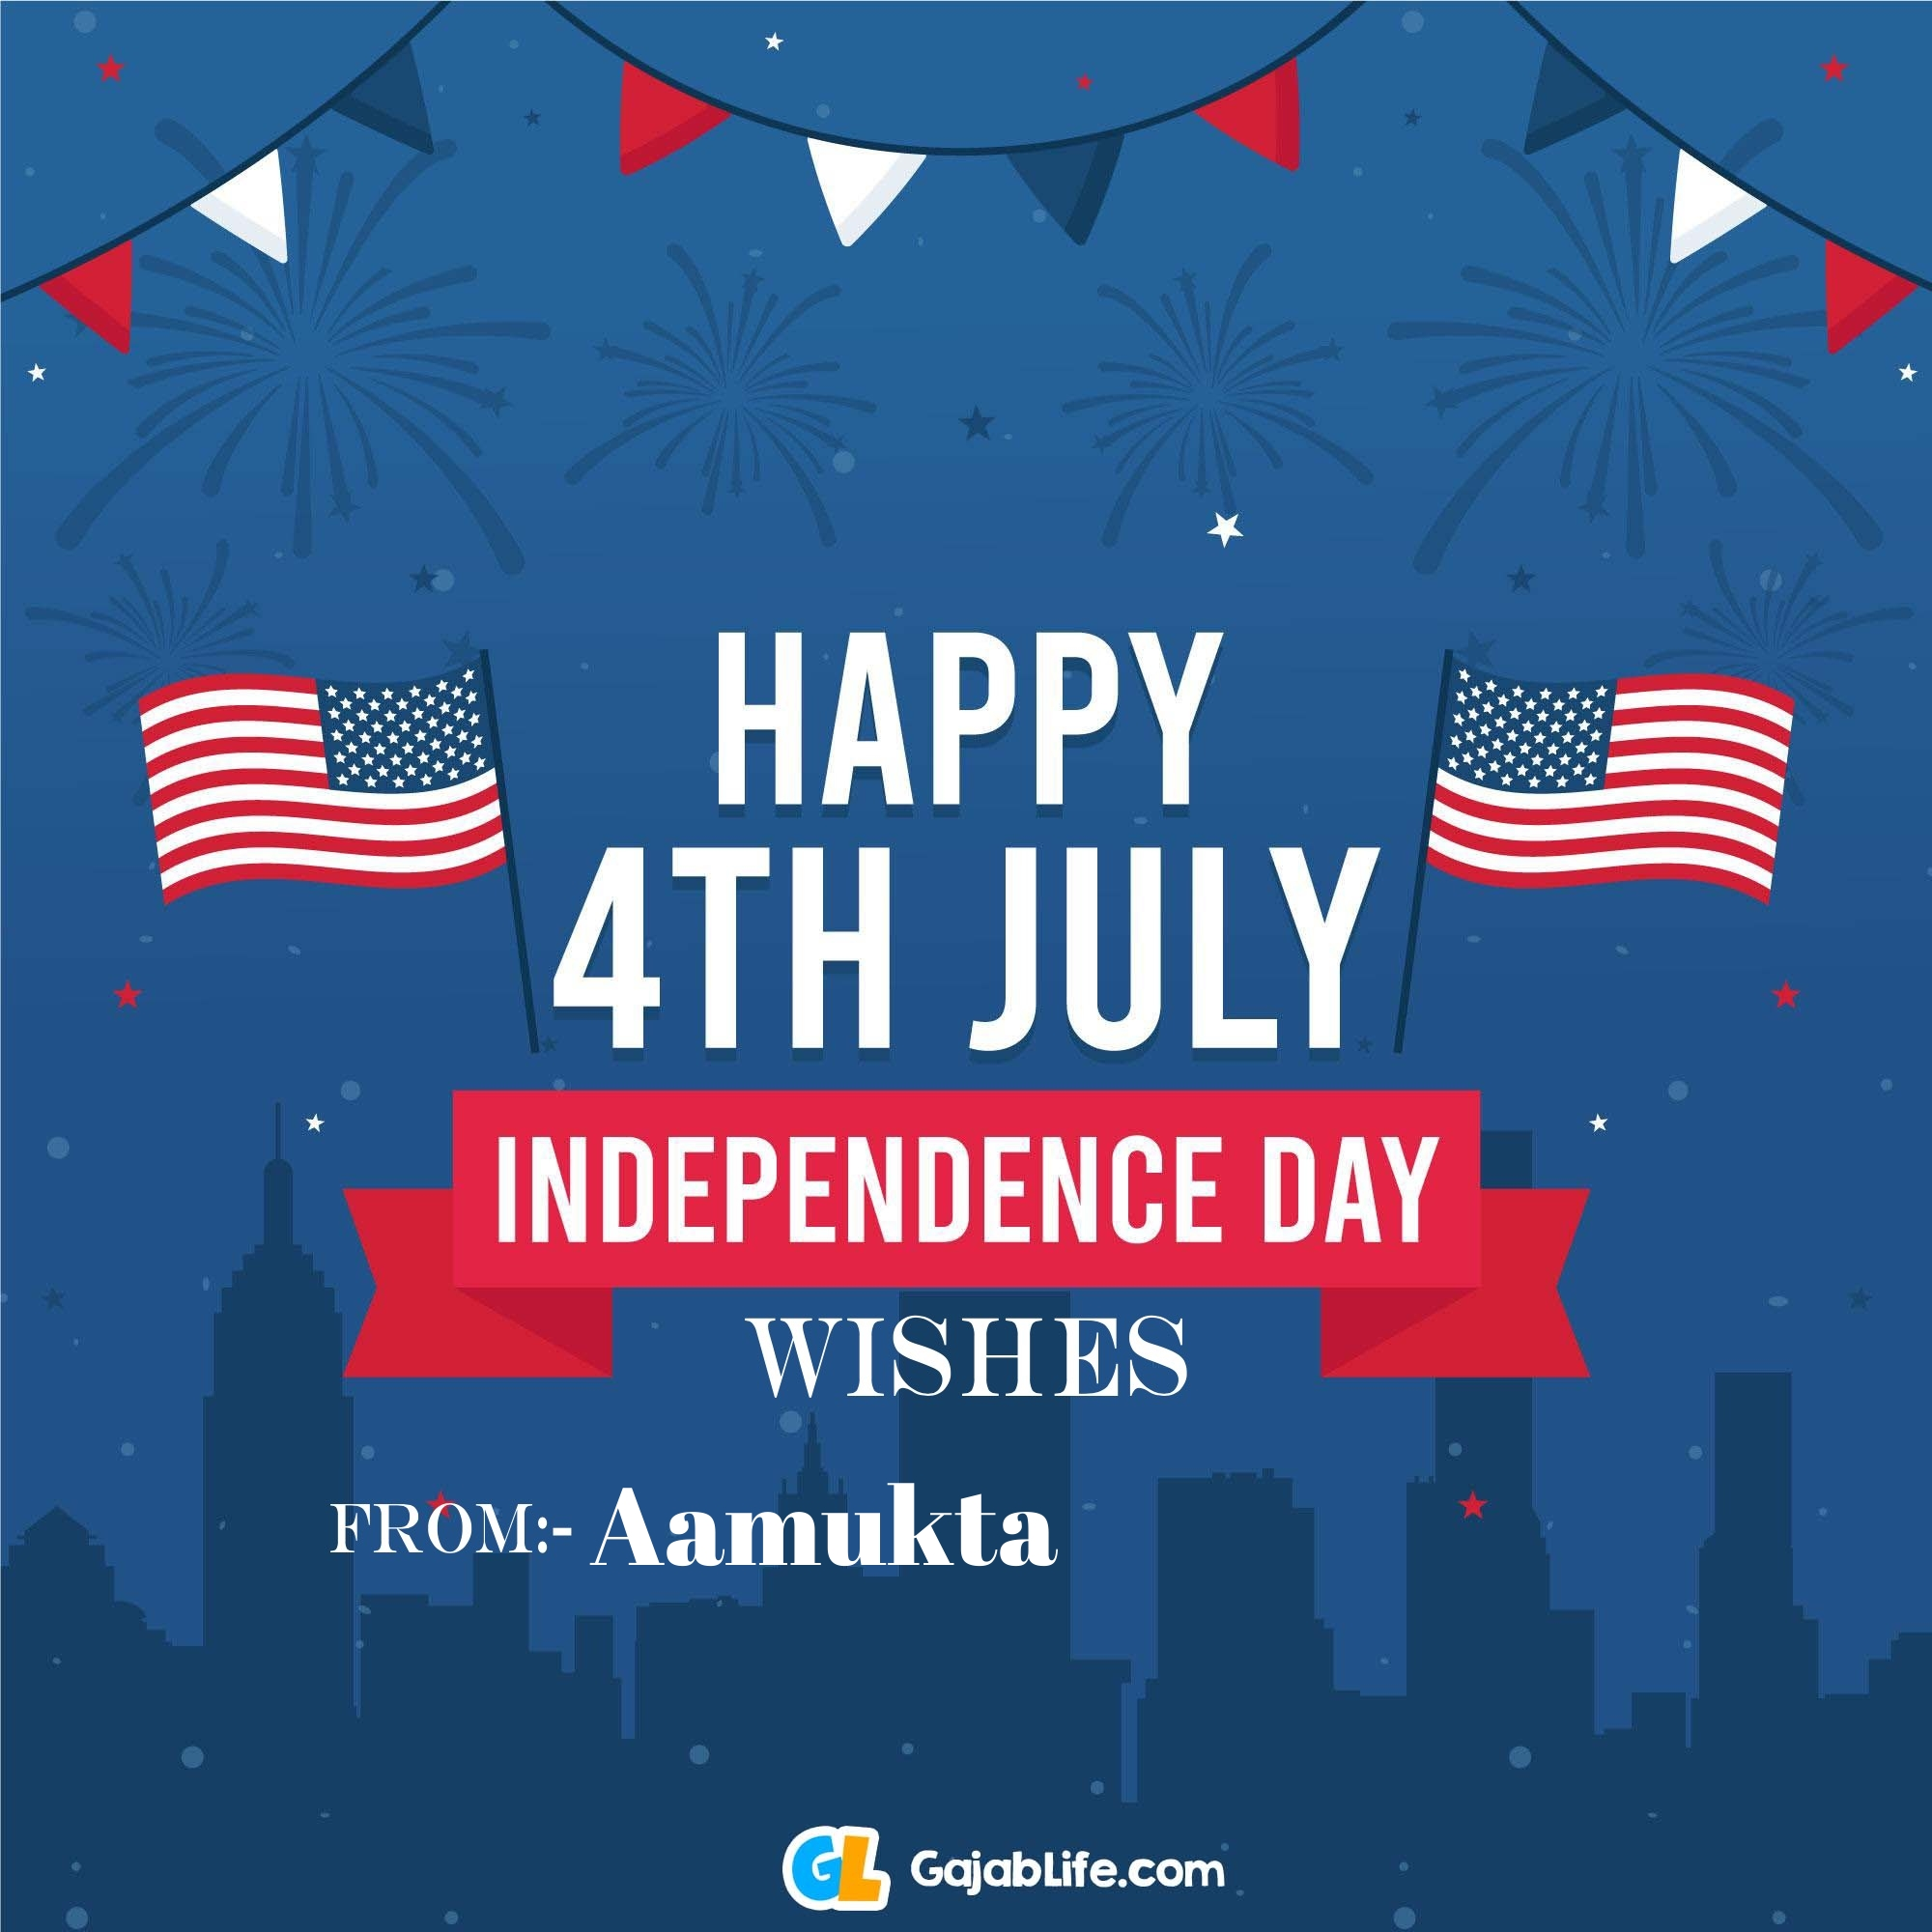 Aamukta happy independence day united states of america images